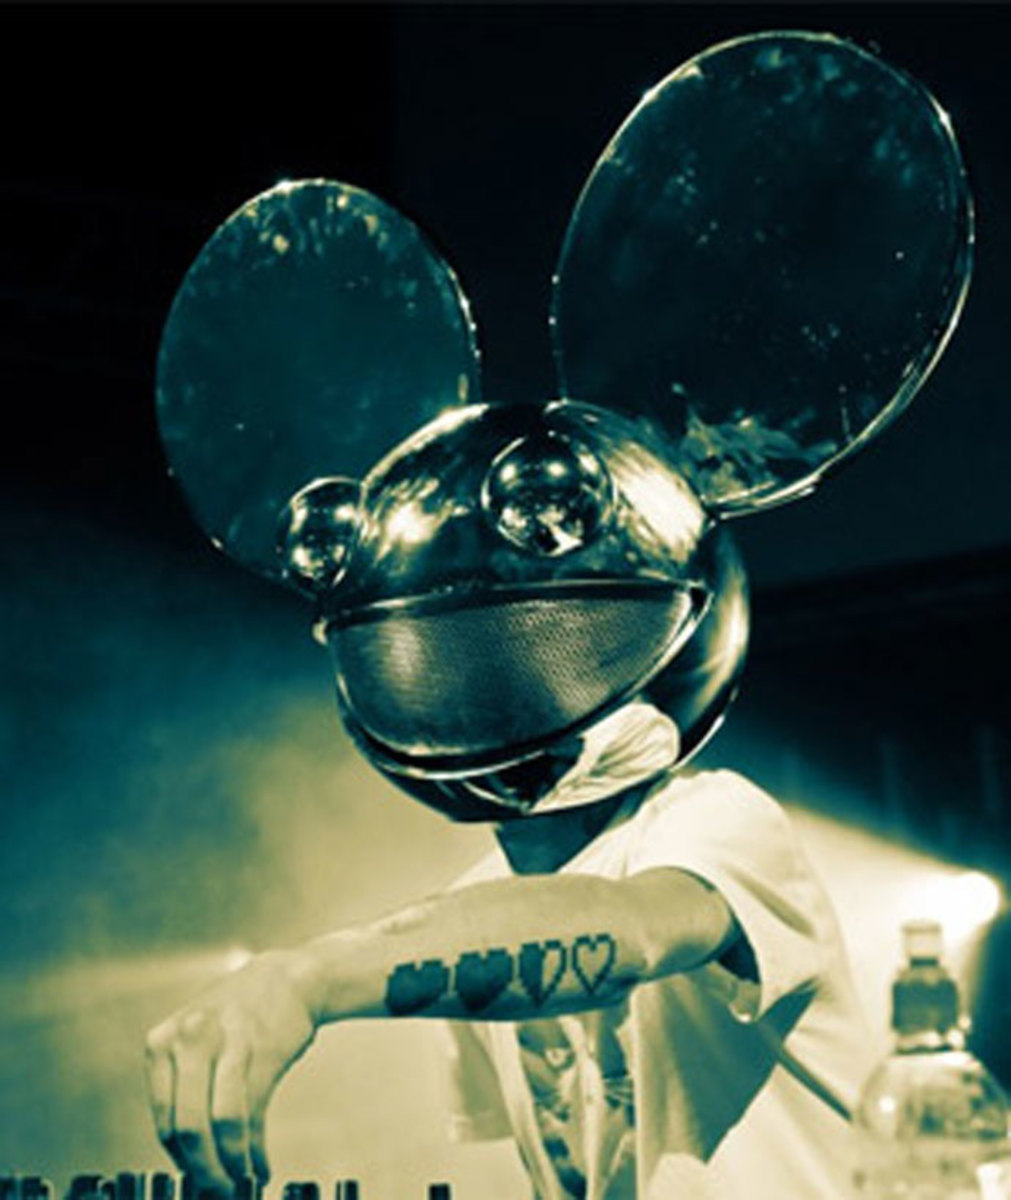 deadmau5 and Disney Settle Their Differences